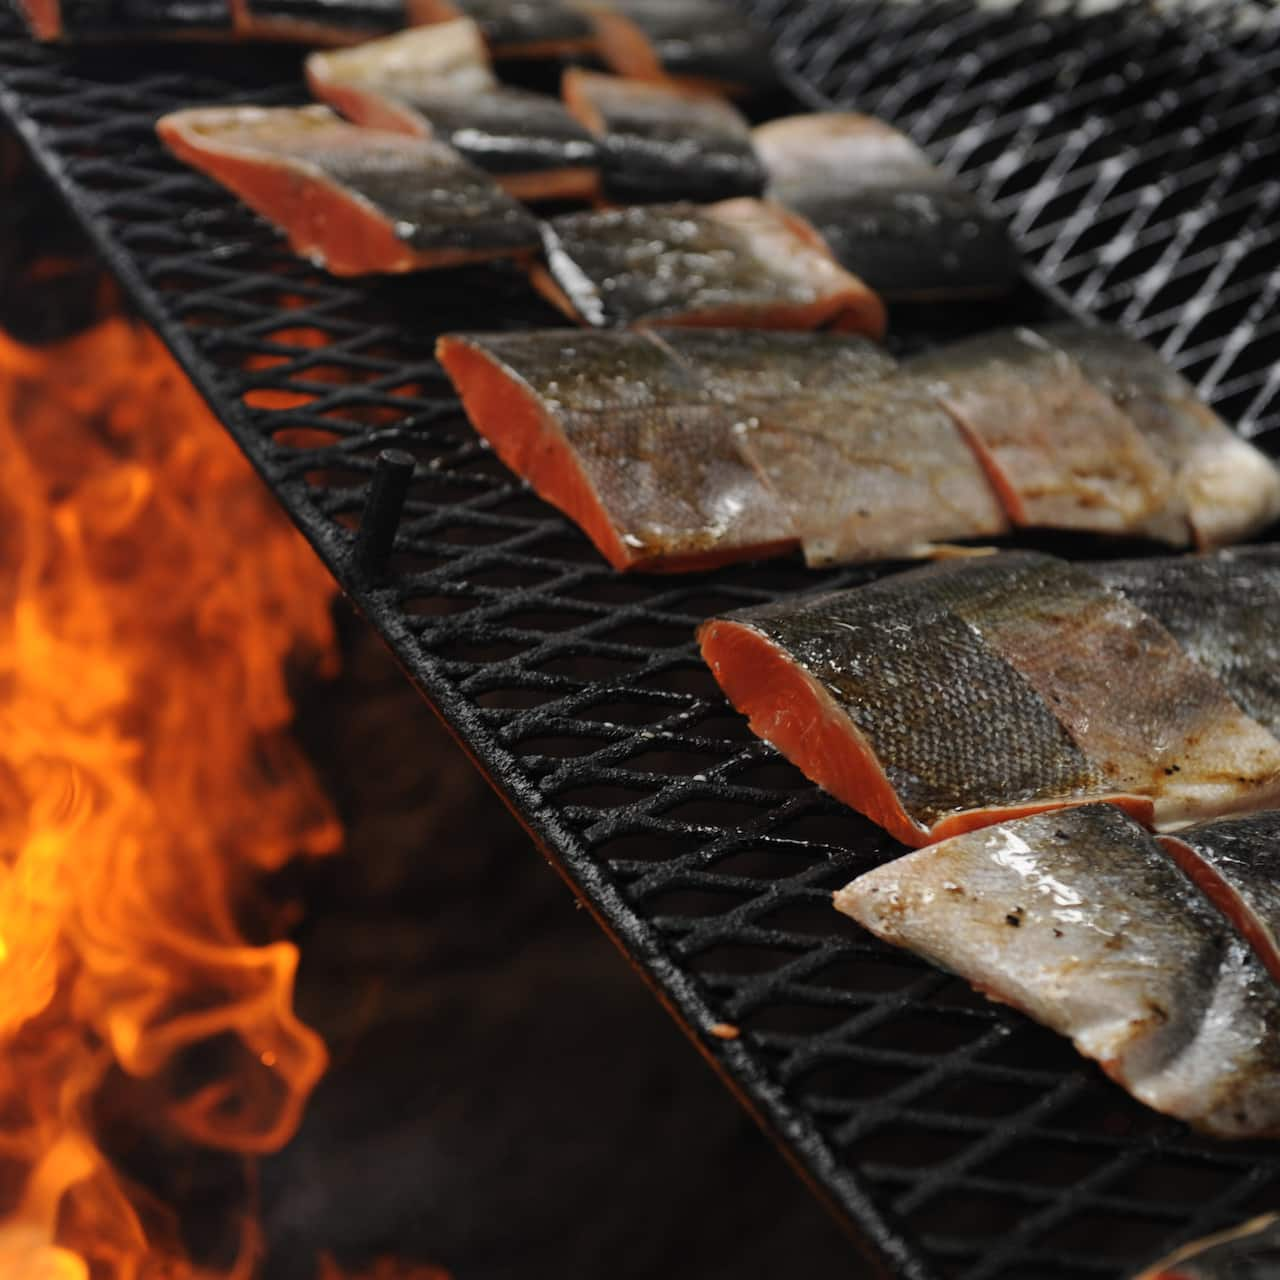 Salmon filets on a grill cook over a fire